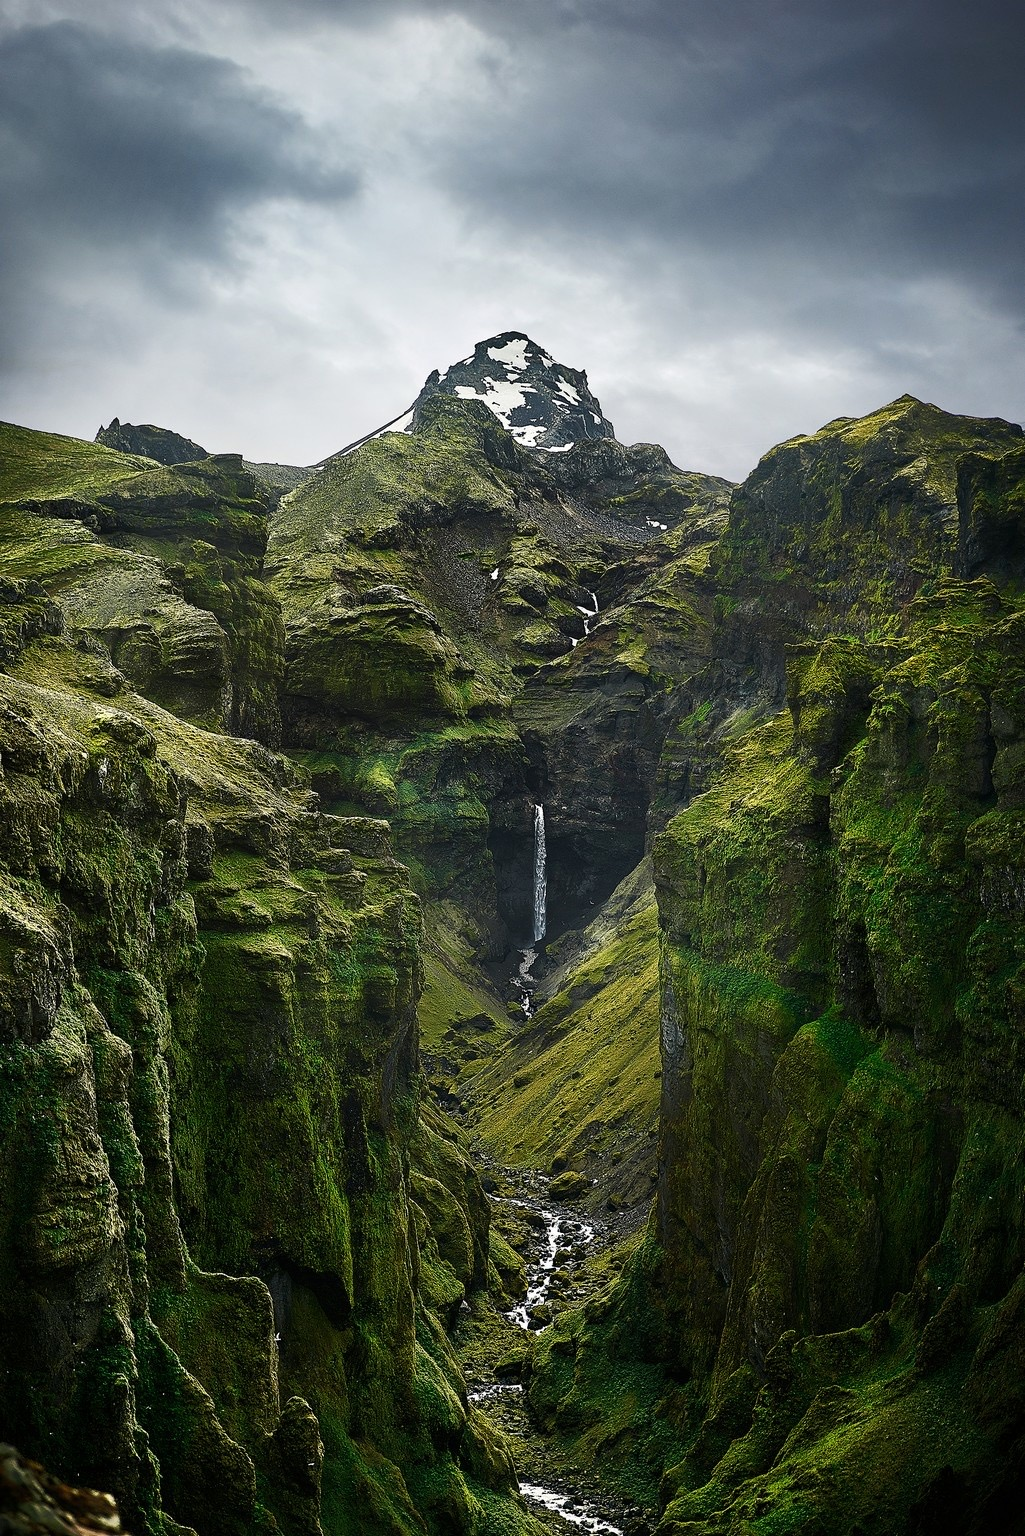 Iceland Canyons Mulagljufur Canyon with waterfall and mountain | canyon in Iceland with a waterfall coming out of a mountain